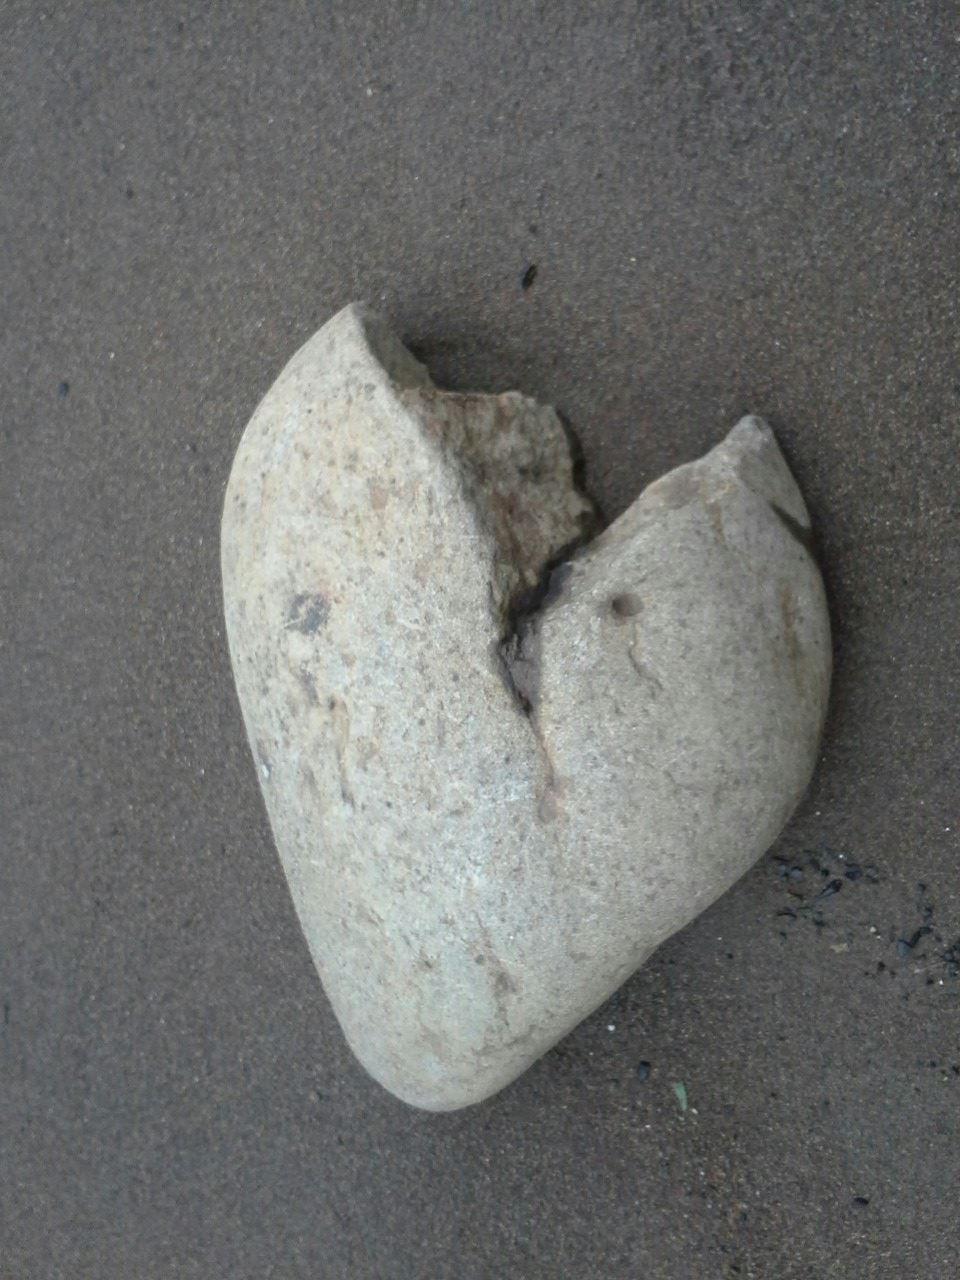 rock heart I took